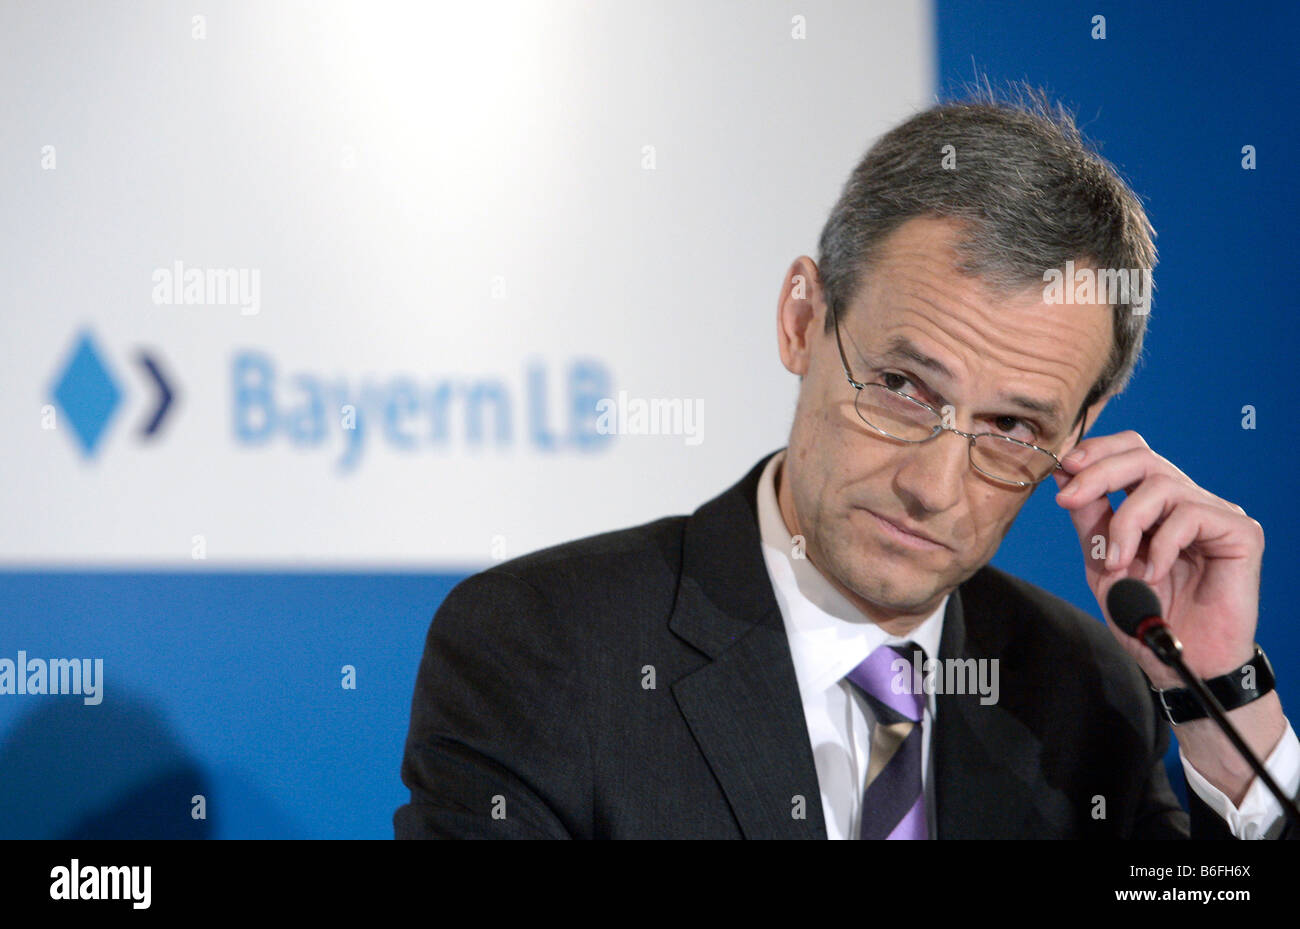 Michael Kemmer, chairman of Bayern LB, during the press conference on annual results on 03/04/2008 in Munich, Bavaria, - Stock Image